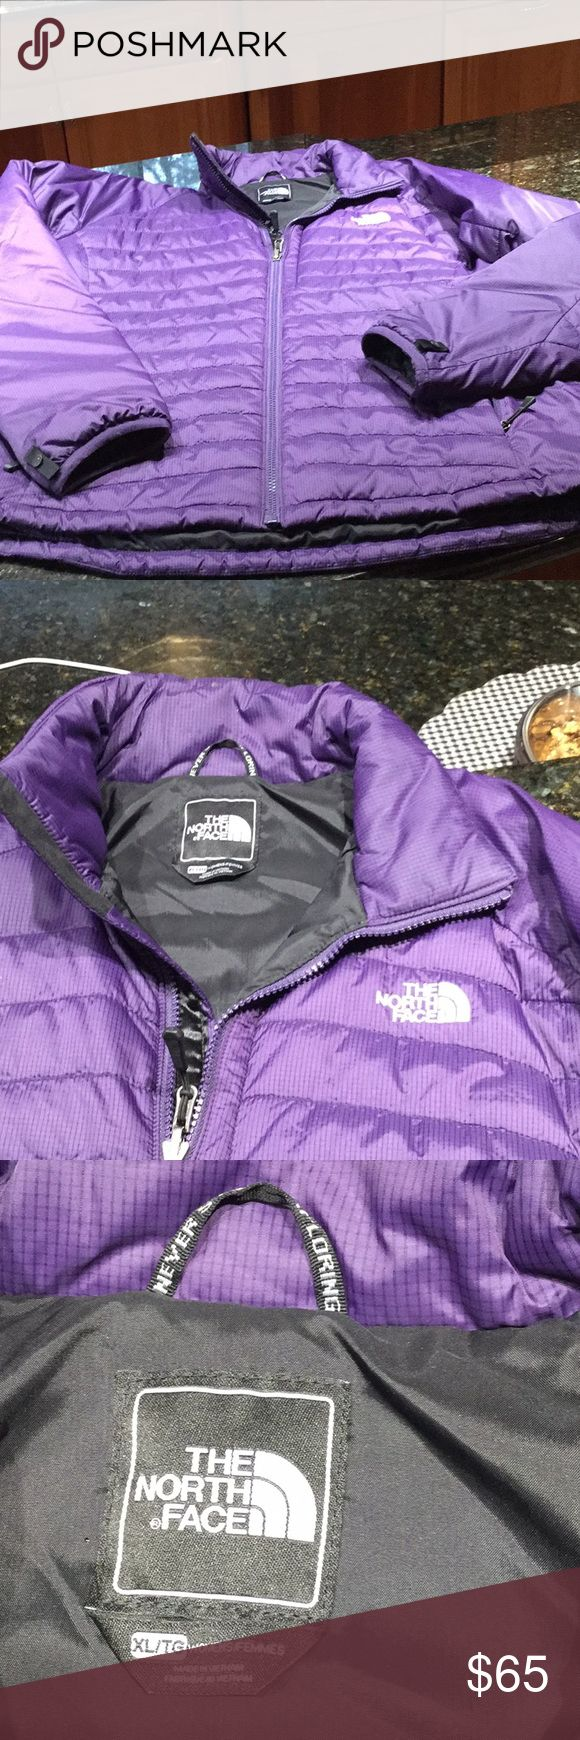 North Face woman's purple jacket North Face woman's purple jacket. Practically bran new, excellent condition, barley worn. Zipper front, side pockets, gorgeous color North Face Jackets & Coats Puffers